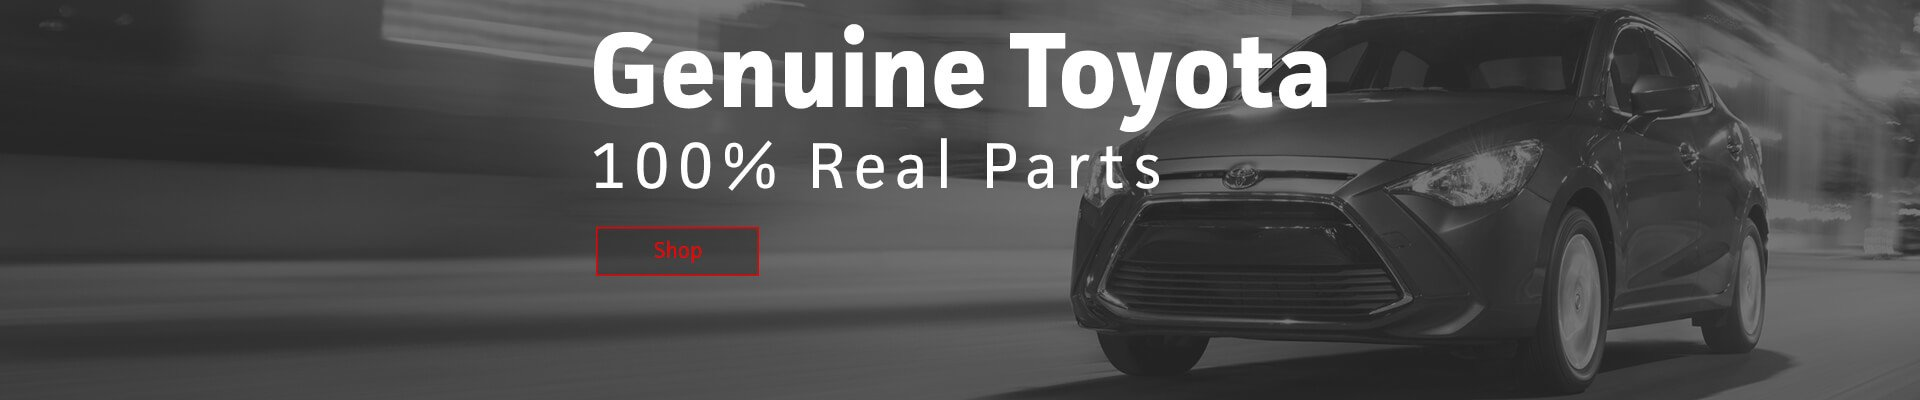 Shop Genuine Toyota Parts